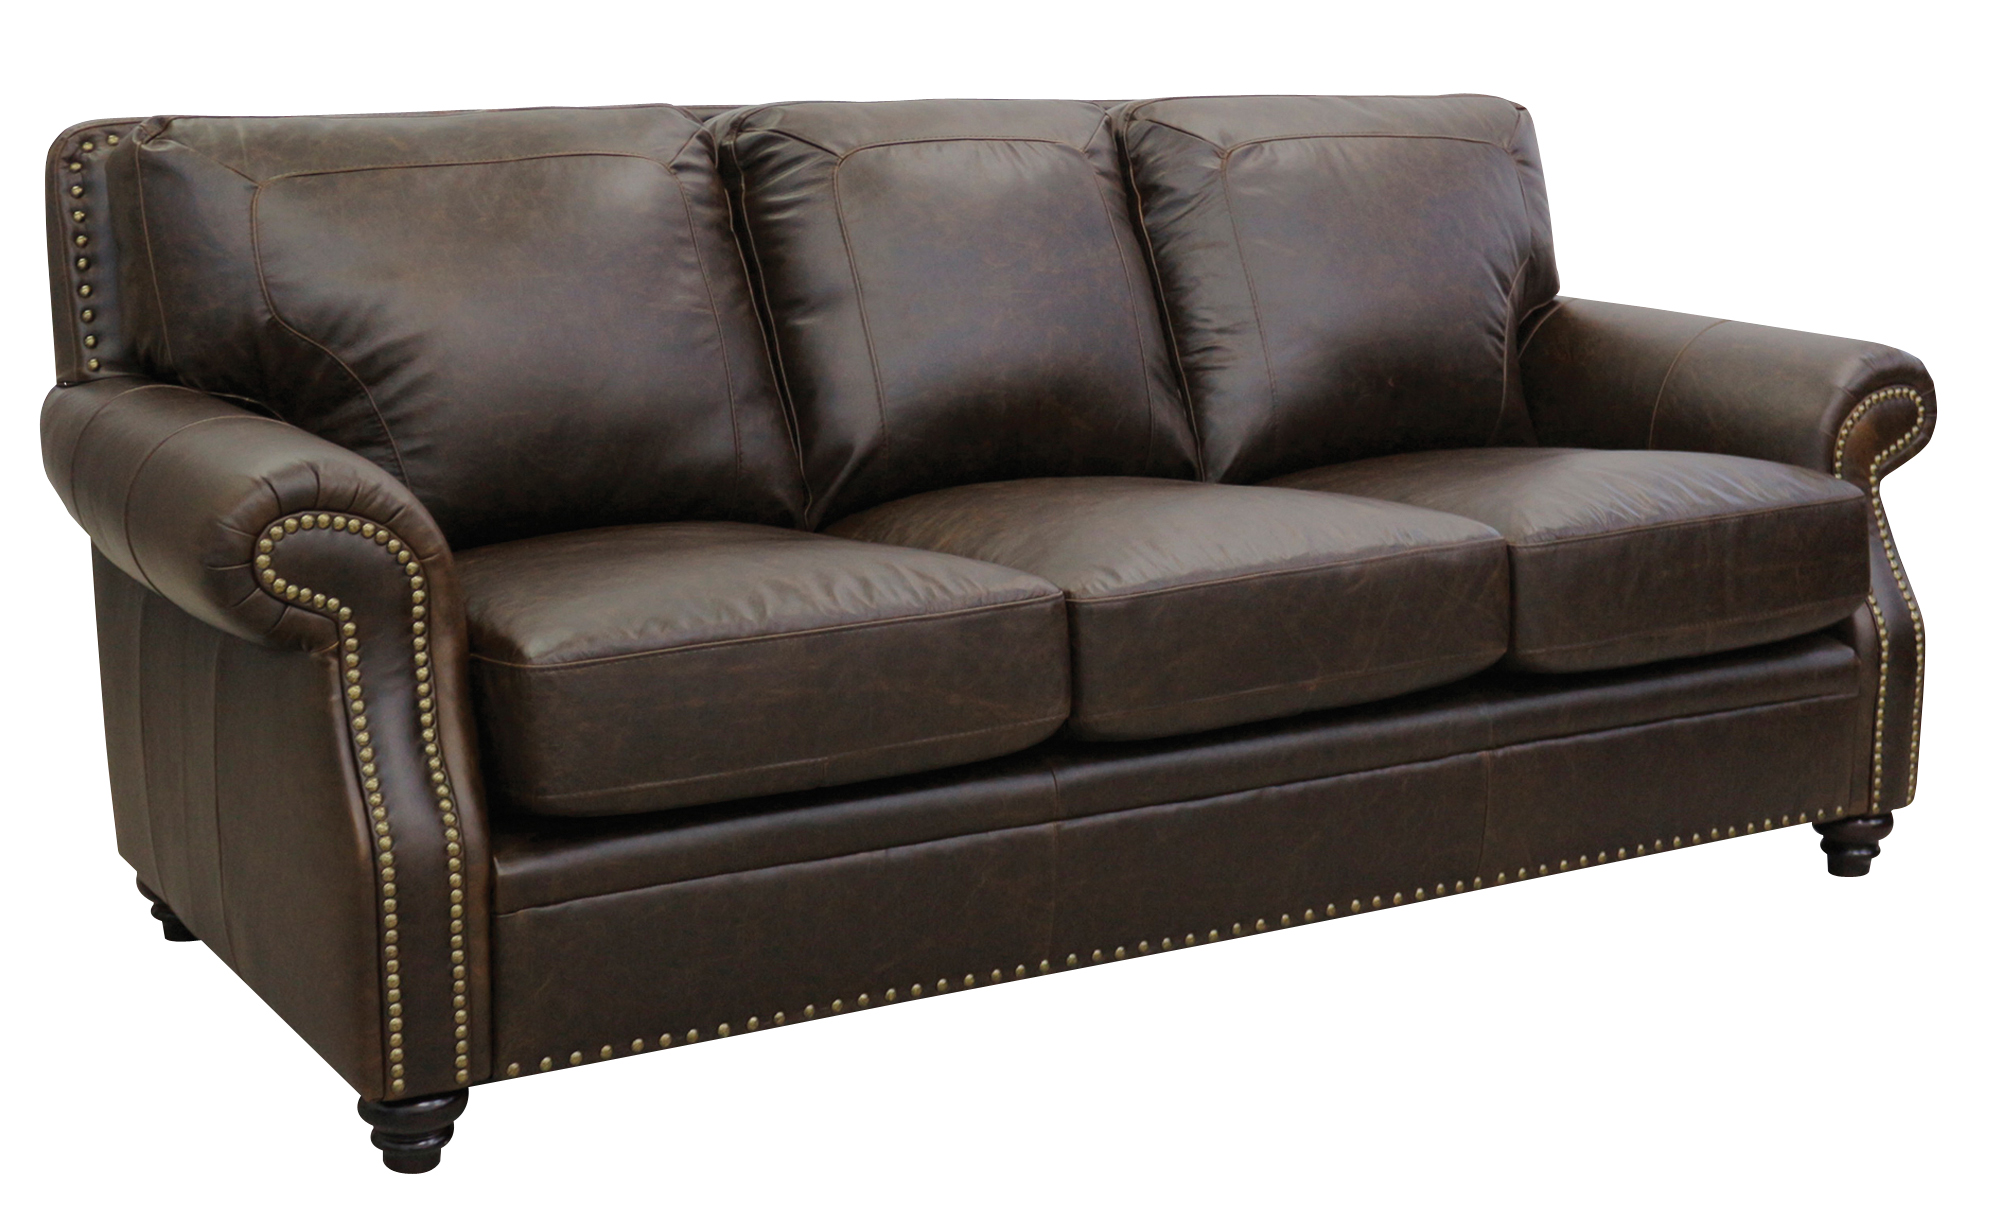 vine brown leather sofa ebay minnie mouse toddler bean bag chair new luke furniture italian made quotmason quot chocolate